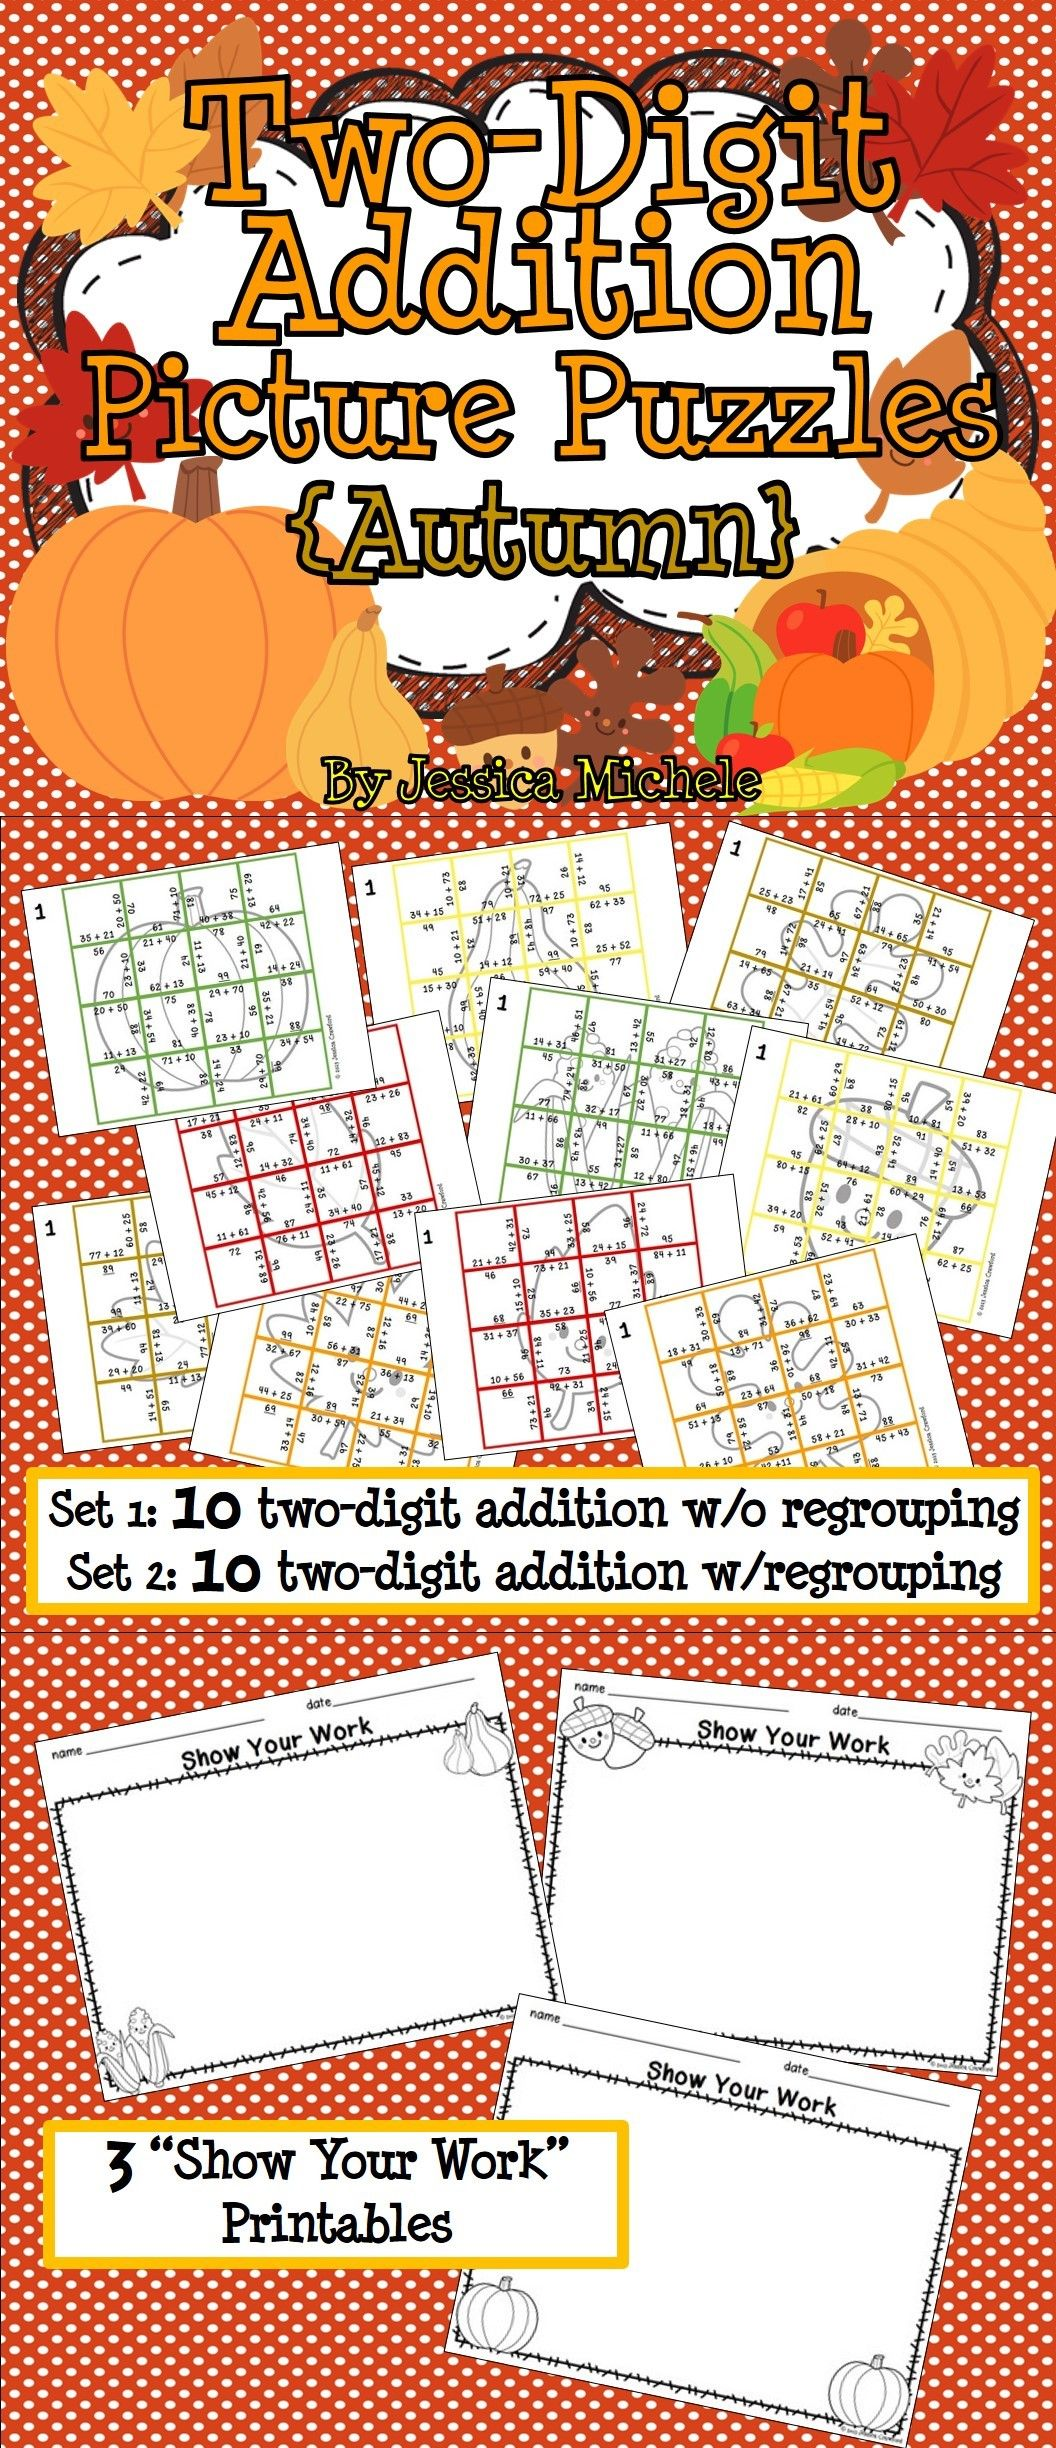 Two Digit Addition Picture Puzzles Autumn